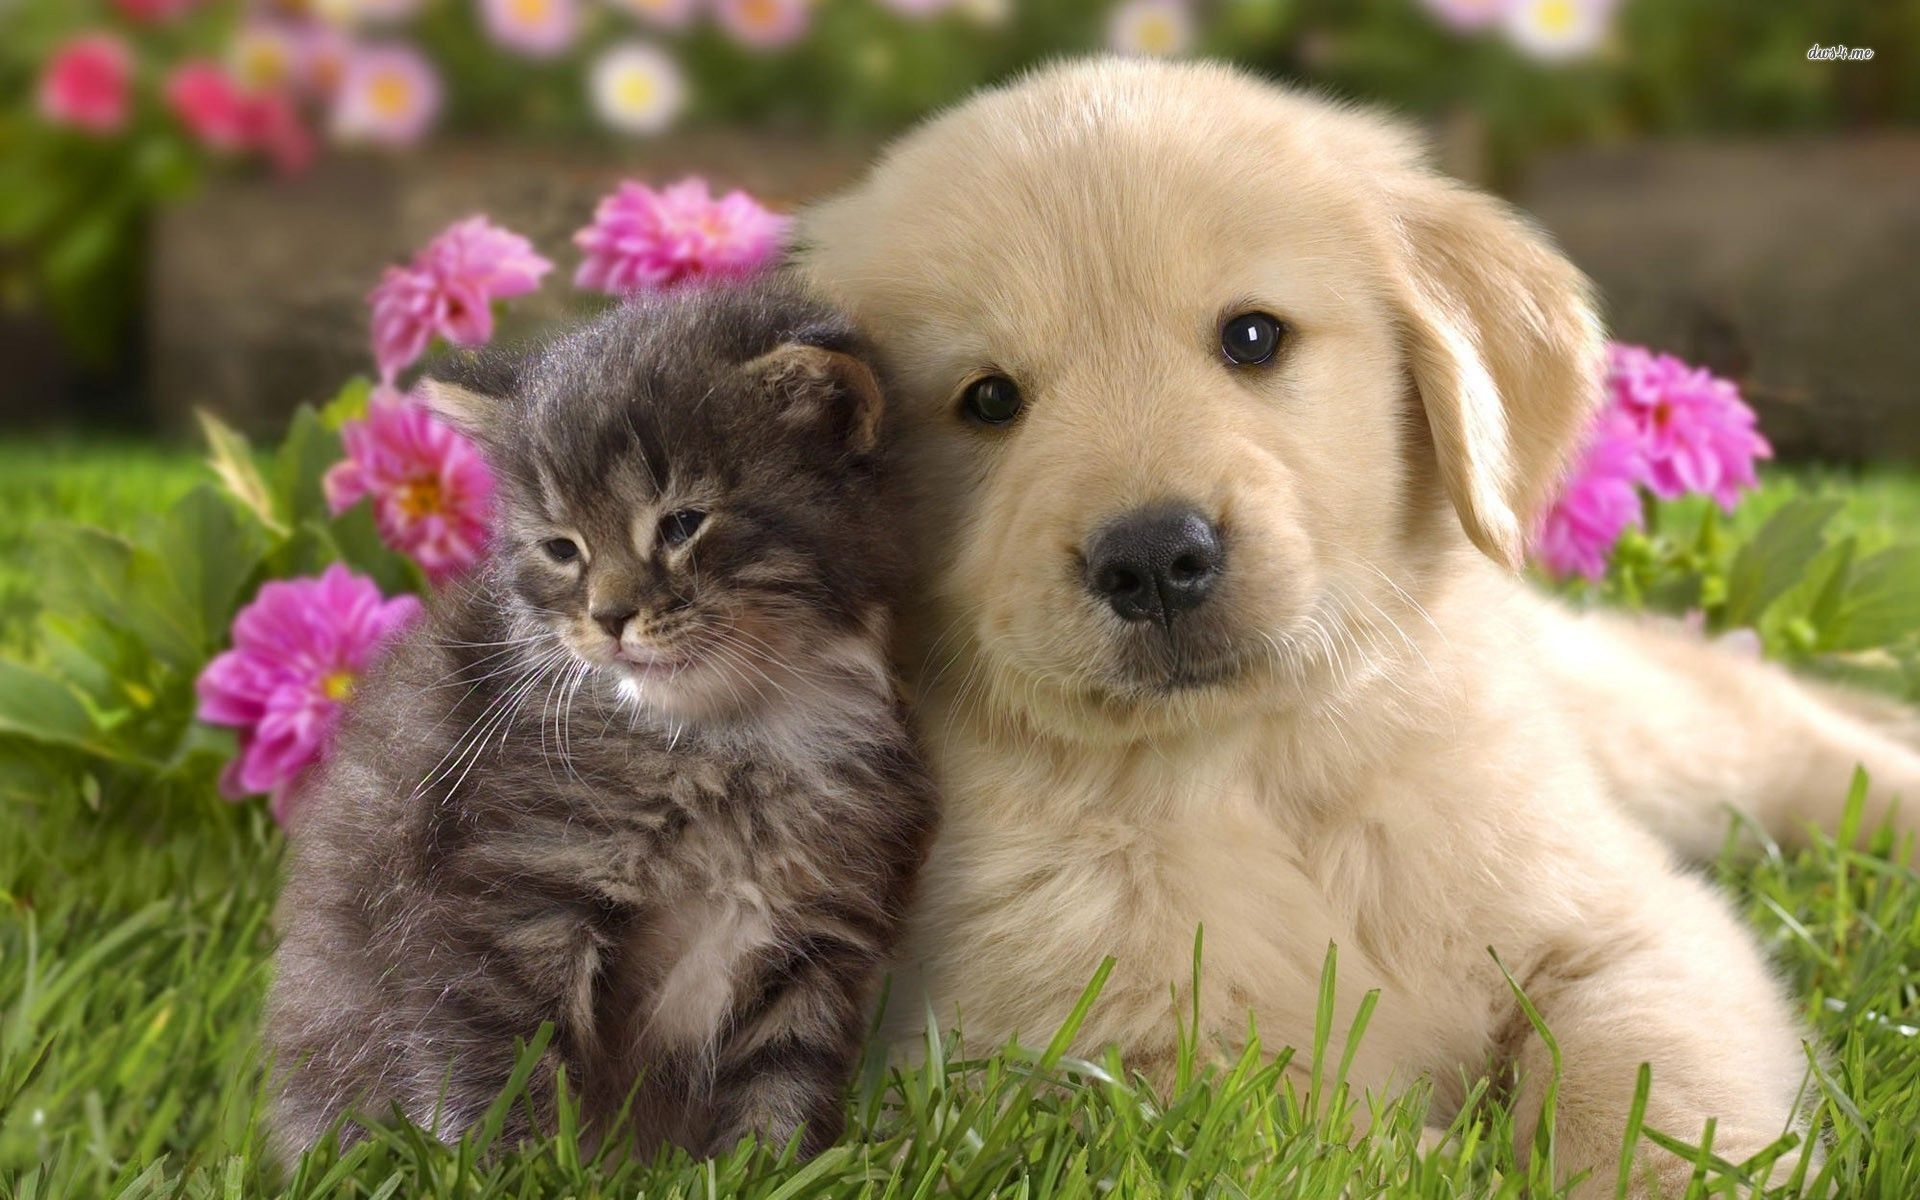 Permalink to 50 Cute Kittens and Puppies for Sale